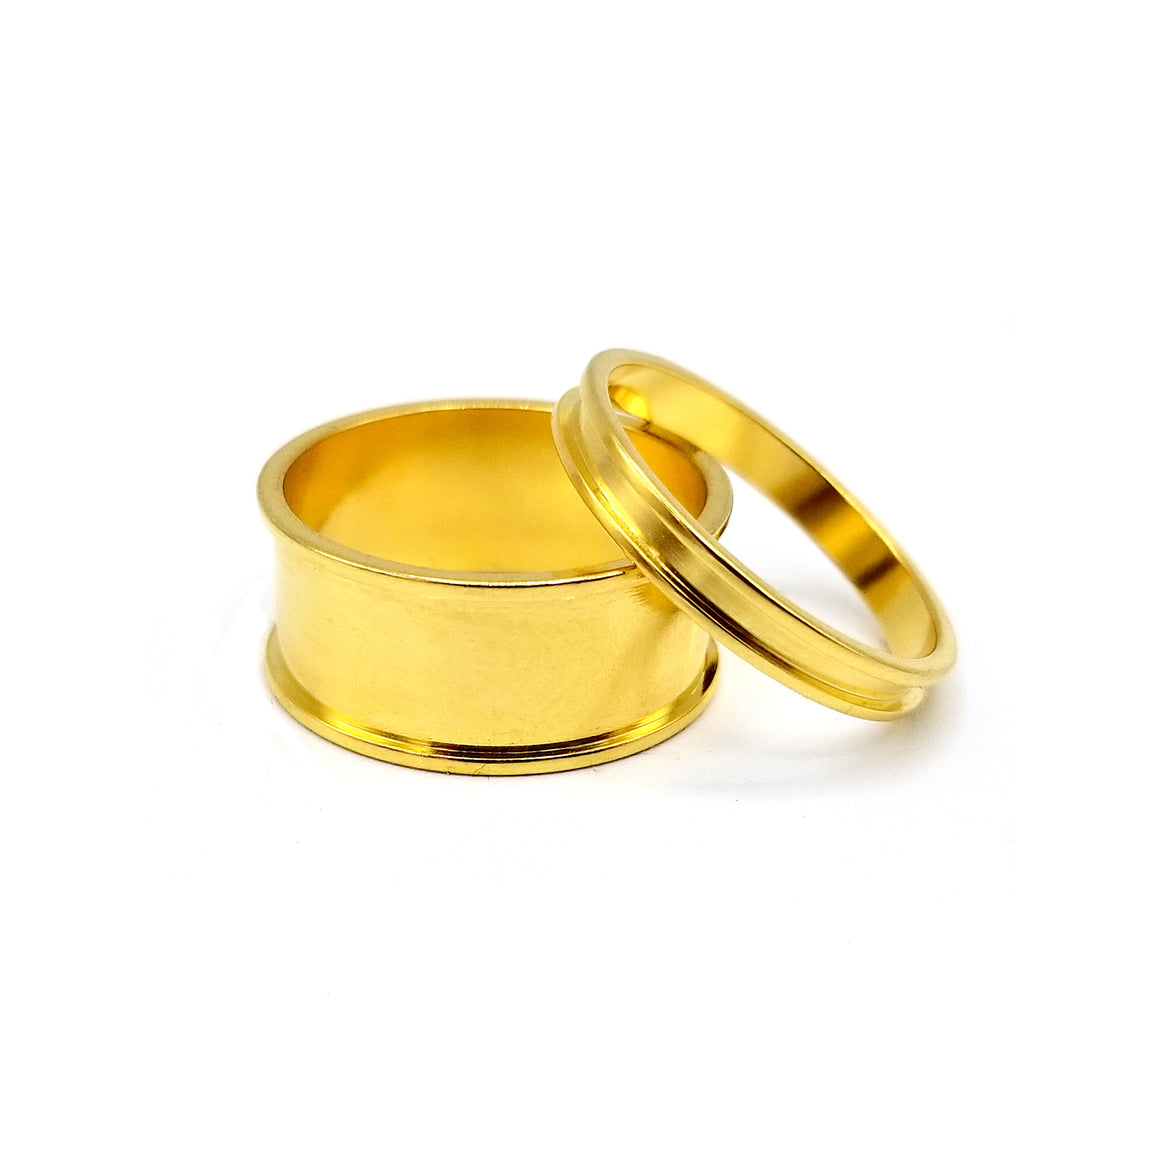 Metal Channel Ring Set - Gold Finish